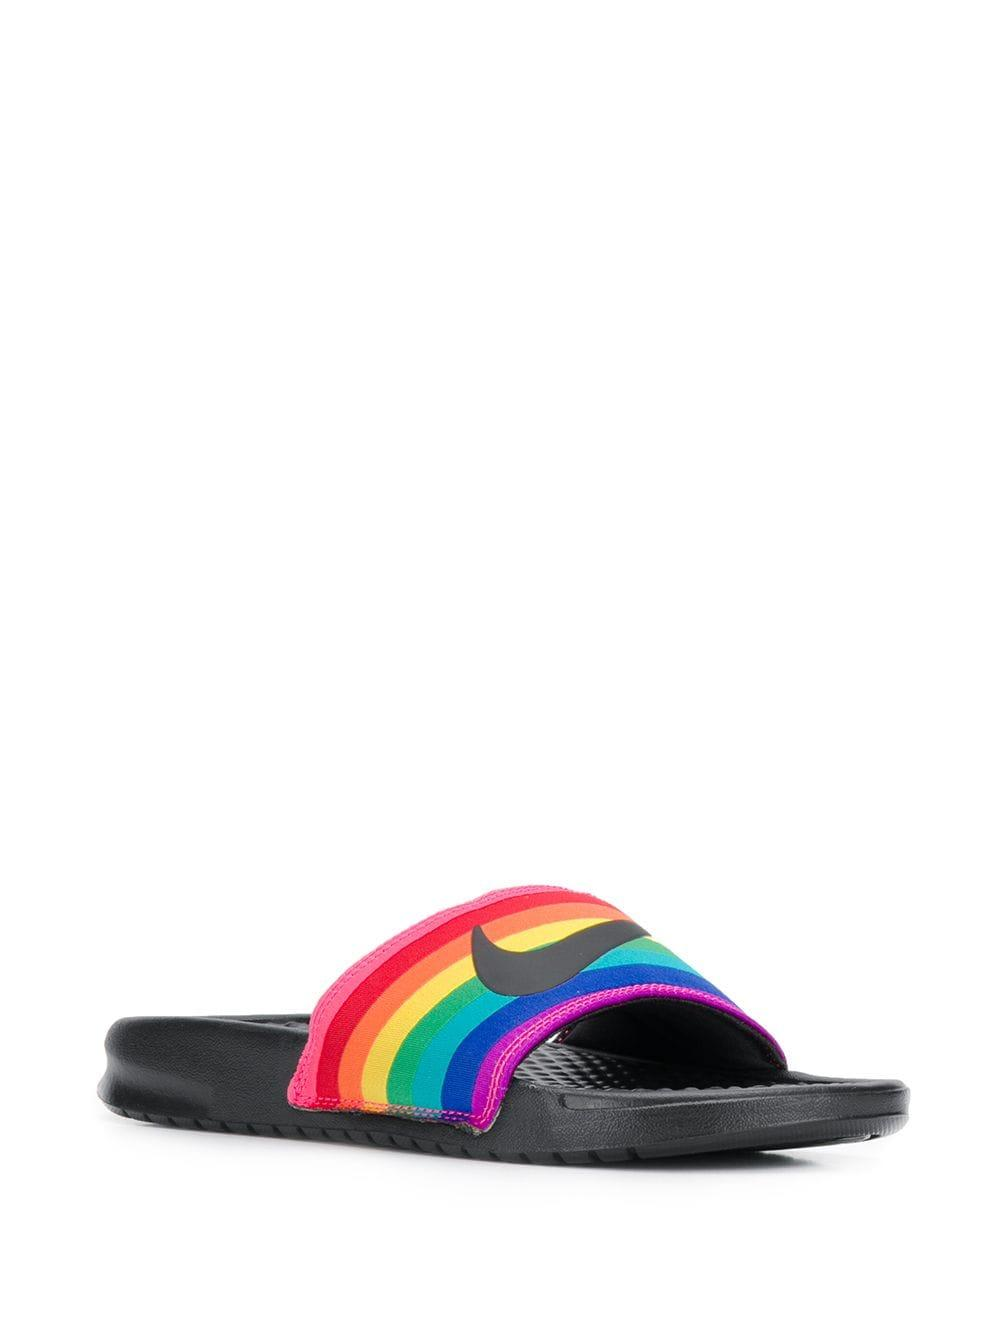 Nike Synthetic Rainbow Slides in Black